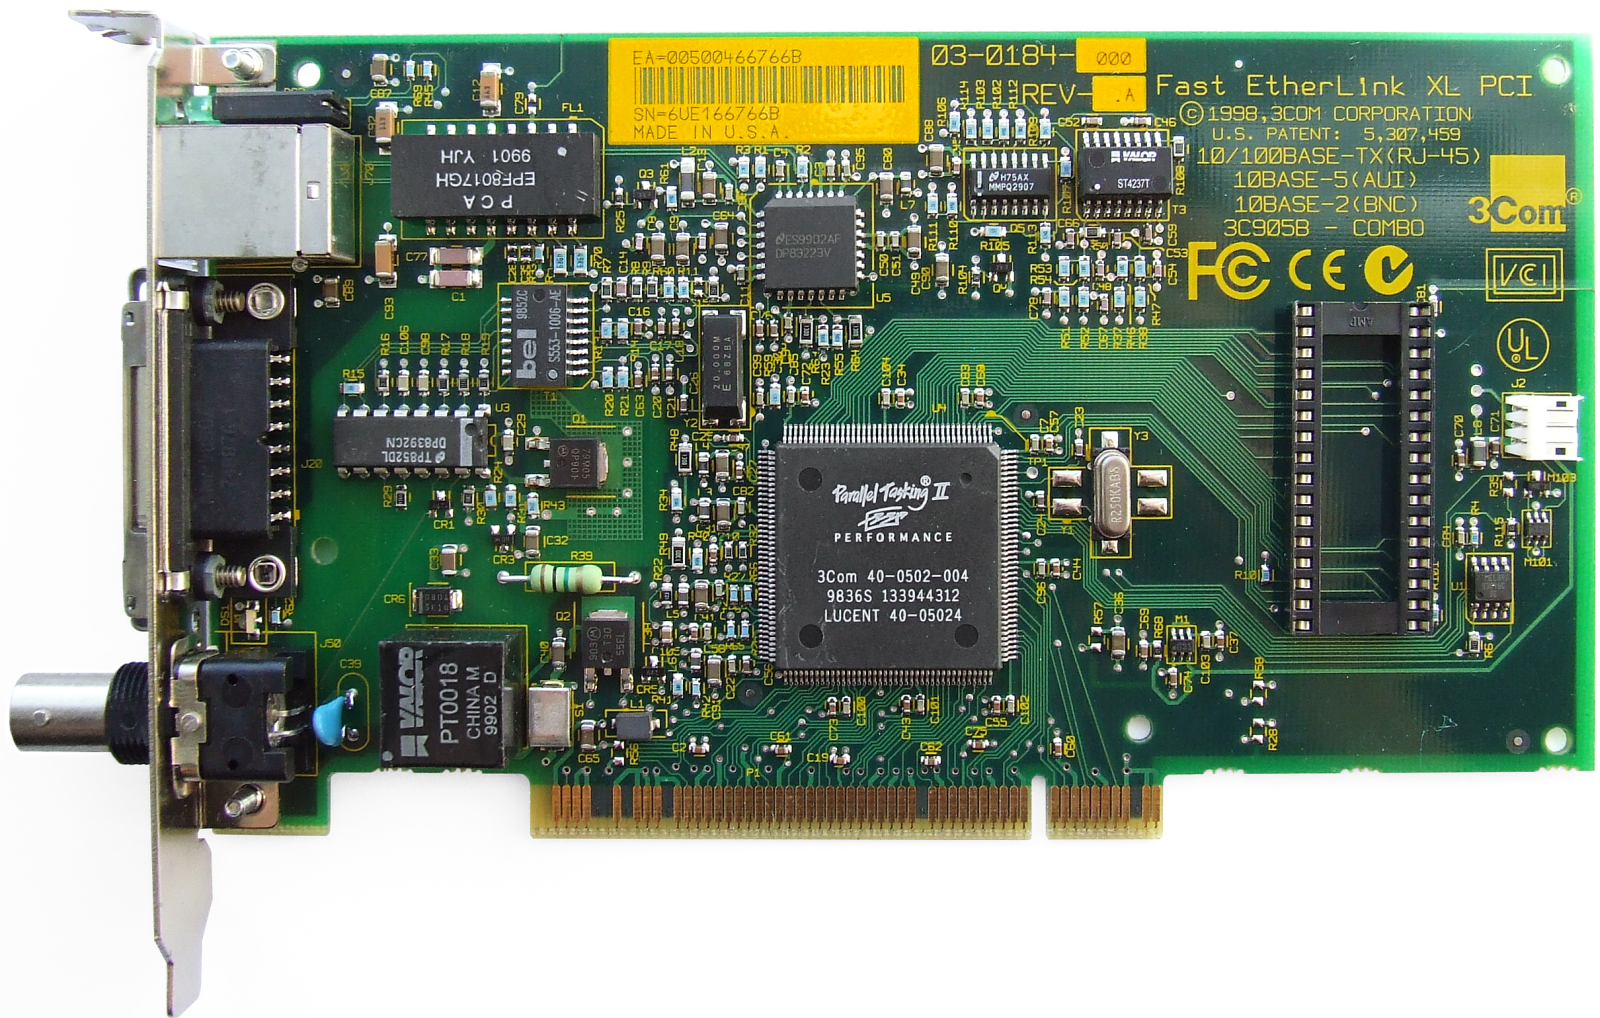 ETHERLINK XL PCI 64BIT DRIVER